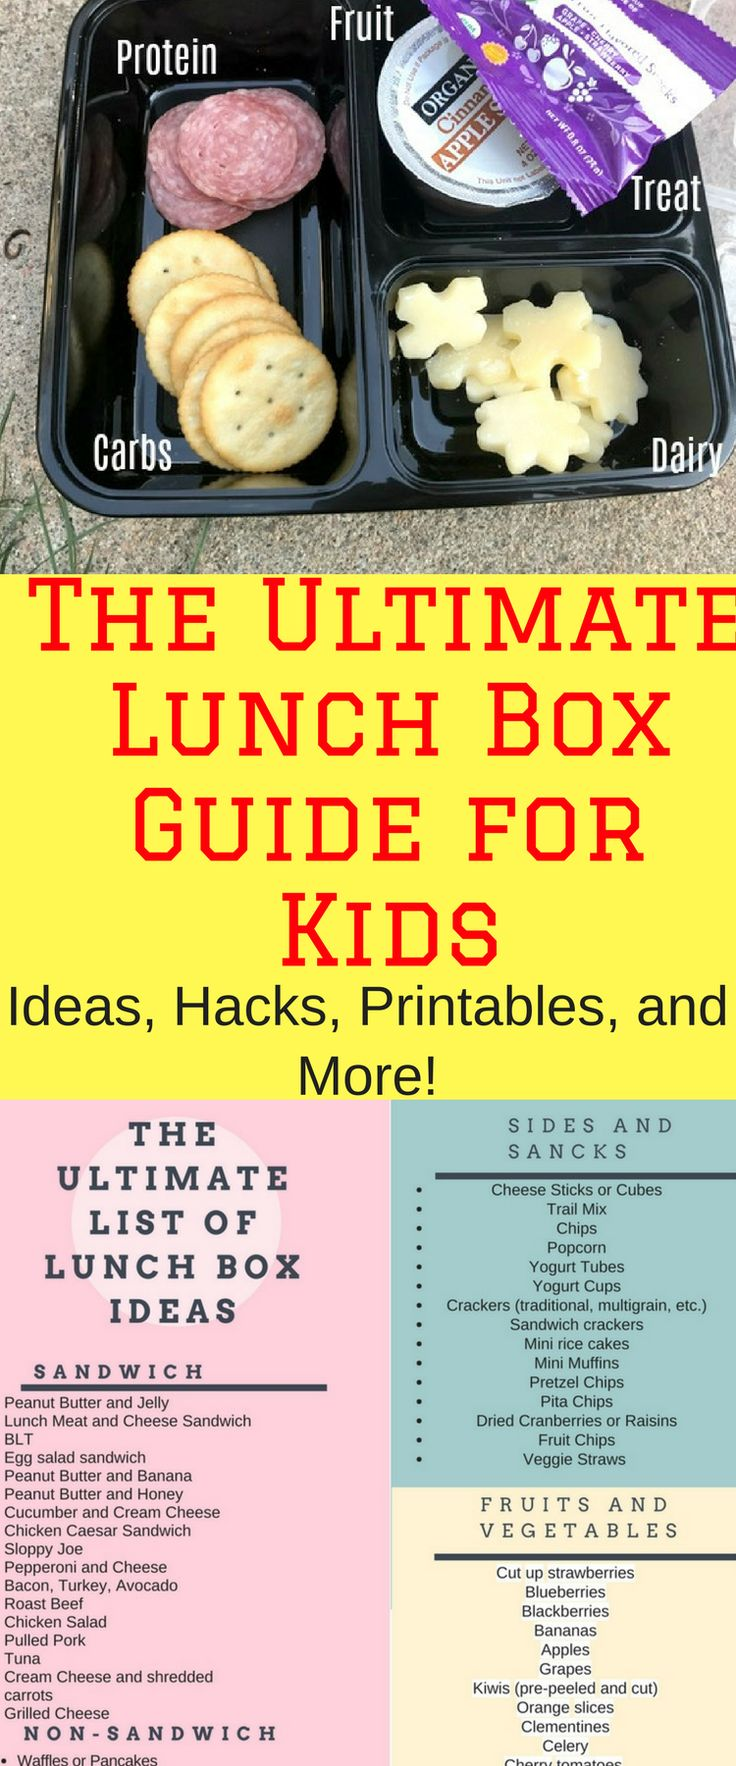 Such a great list of lunch ideas for toddlers and school-aged kids!